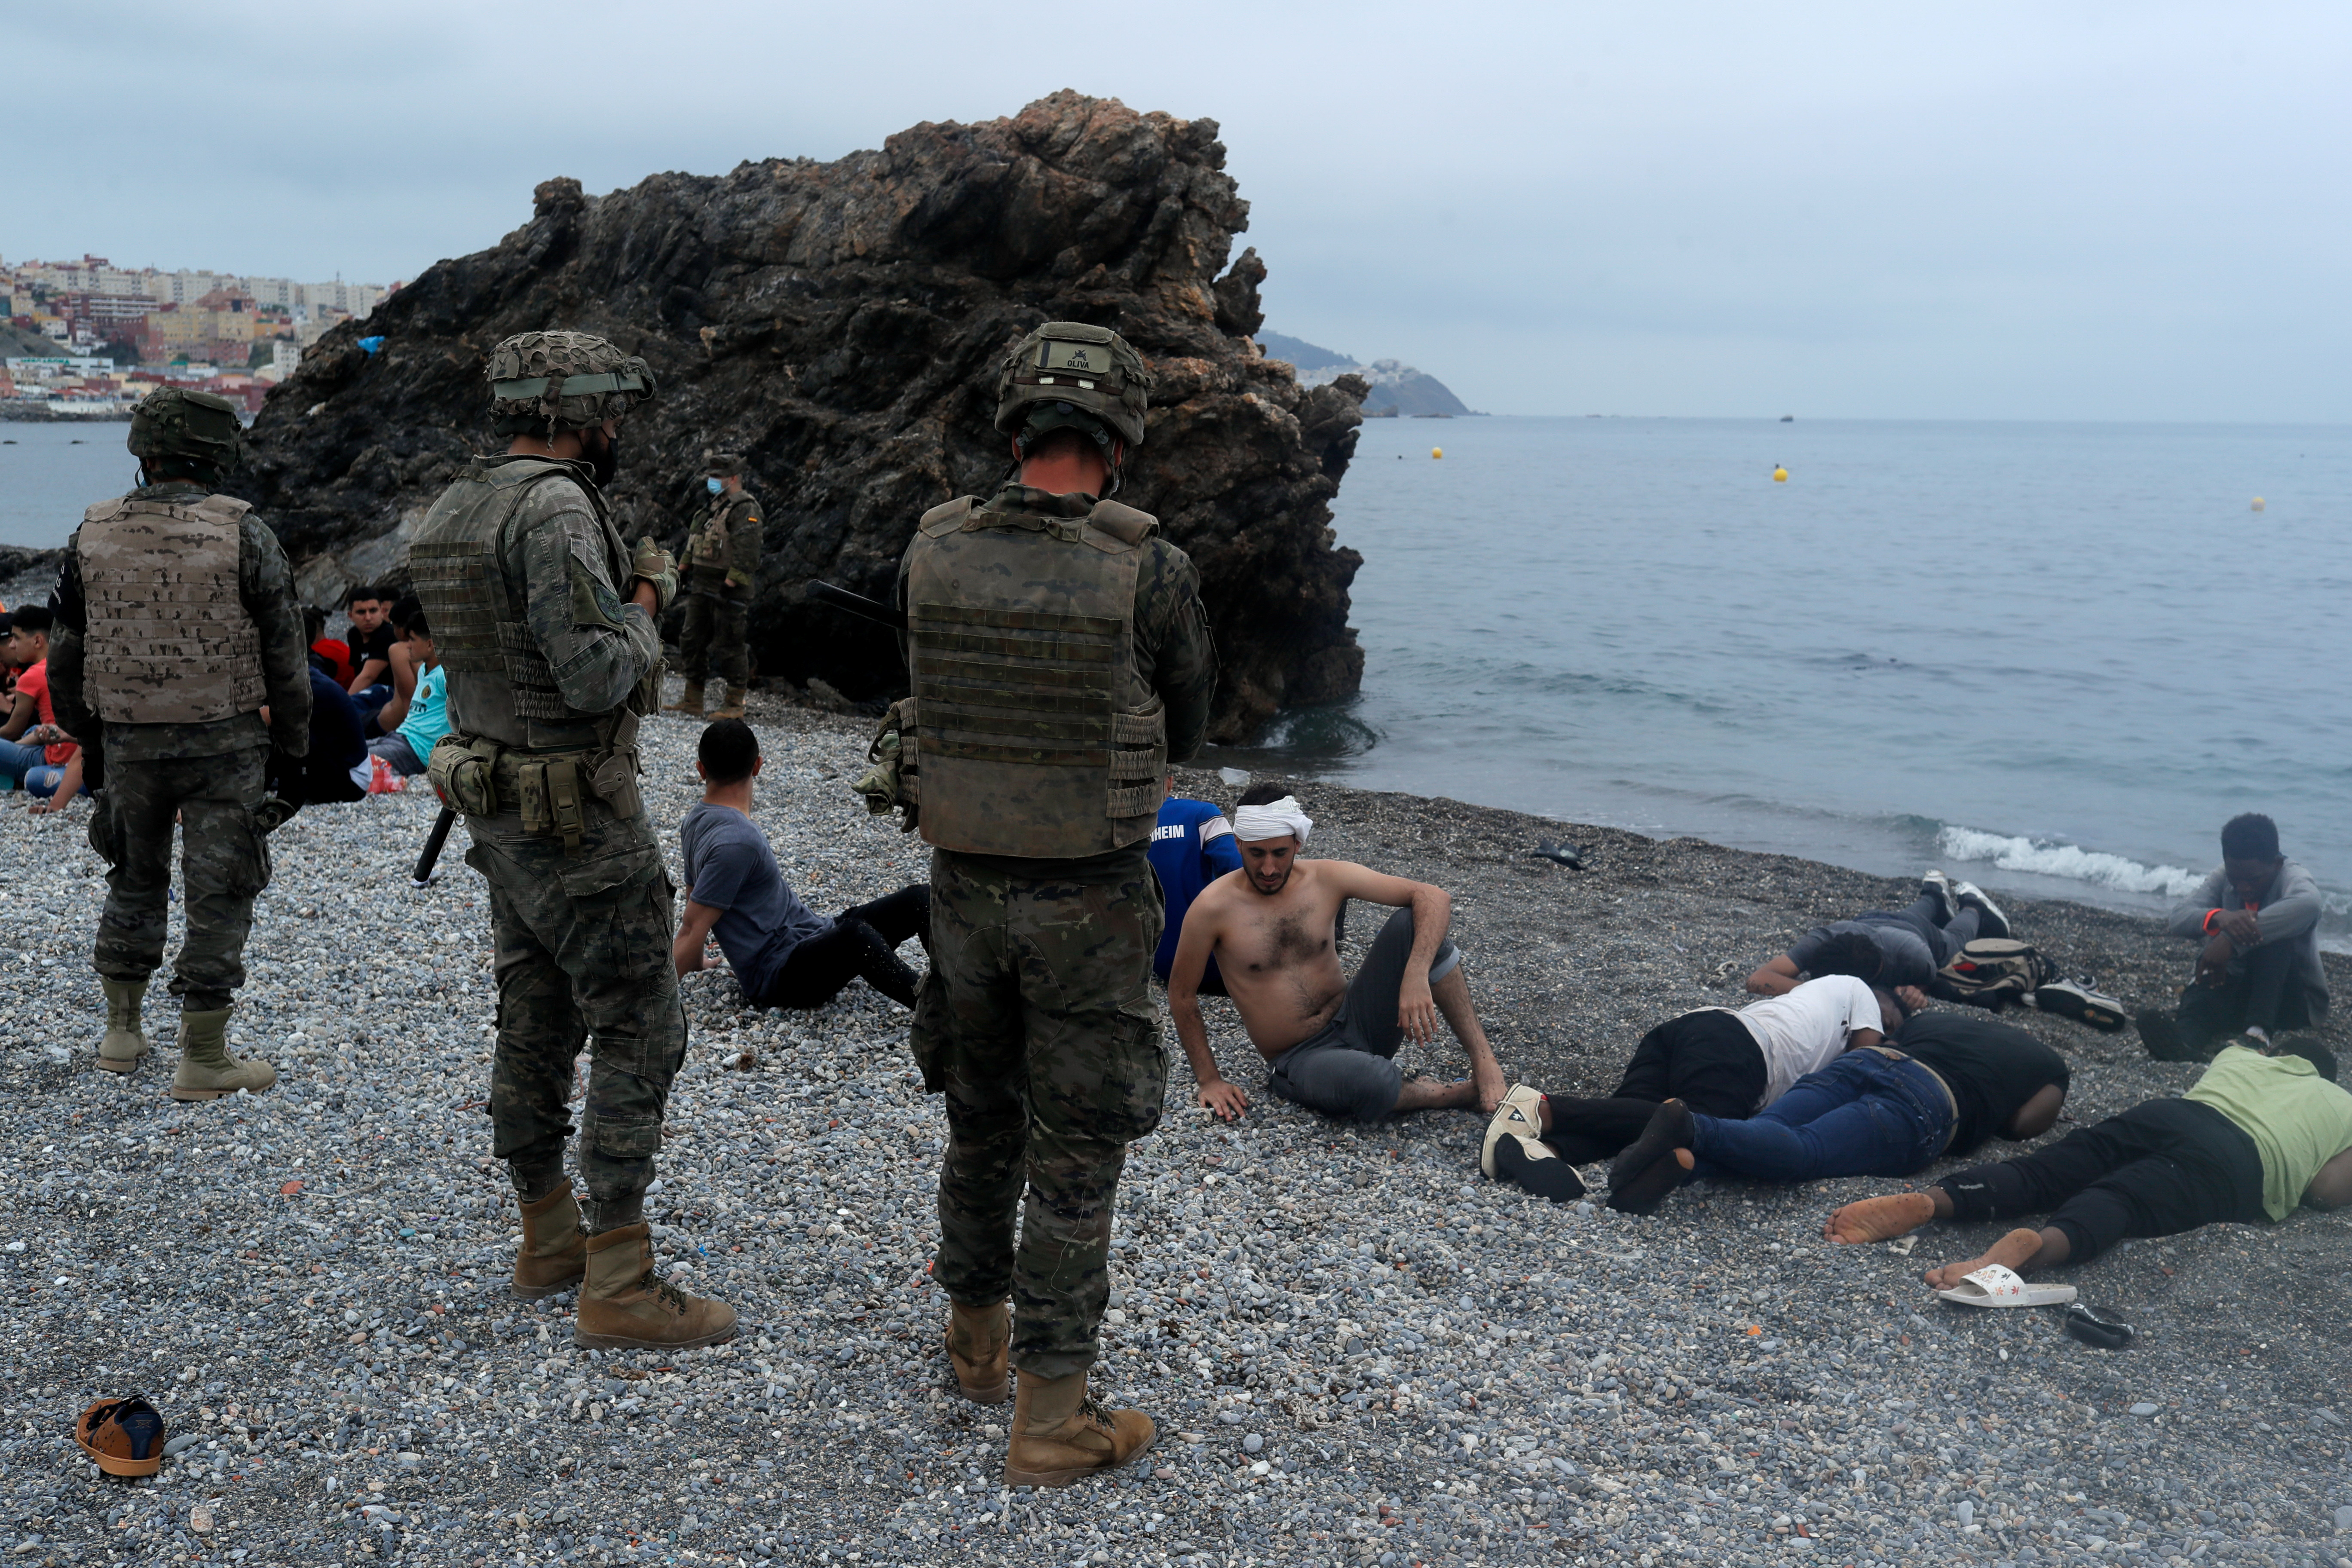 Spanish legionnaires stand around Moroccan citizens as they lie down on El Tarajal beach, next to the fence between the Spanish-Moroccan border, after thousands of Moroccans swam across this border on Monday, in Ceuta, Spain, May 18, 2021. REUTERS/Jon Nazca